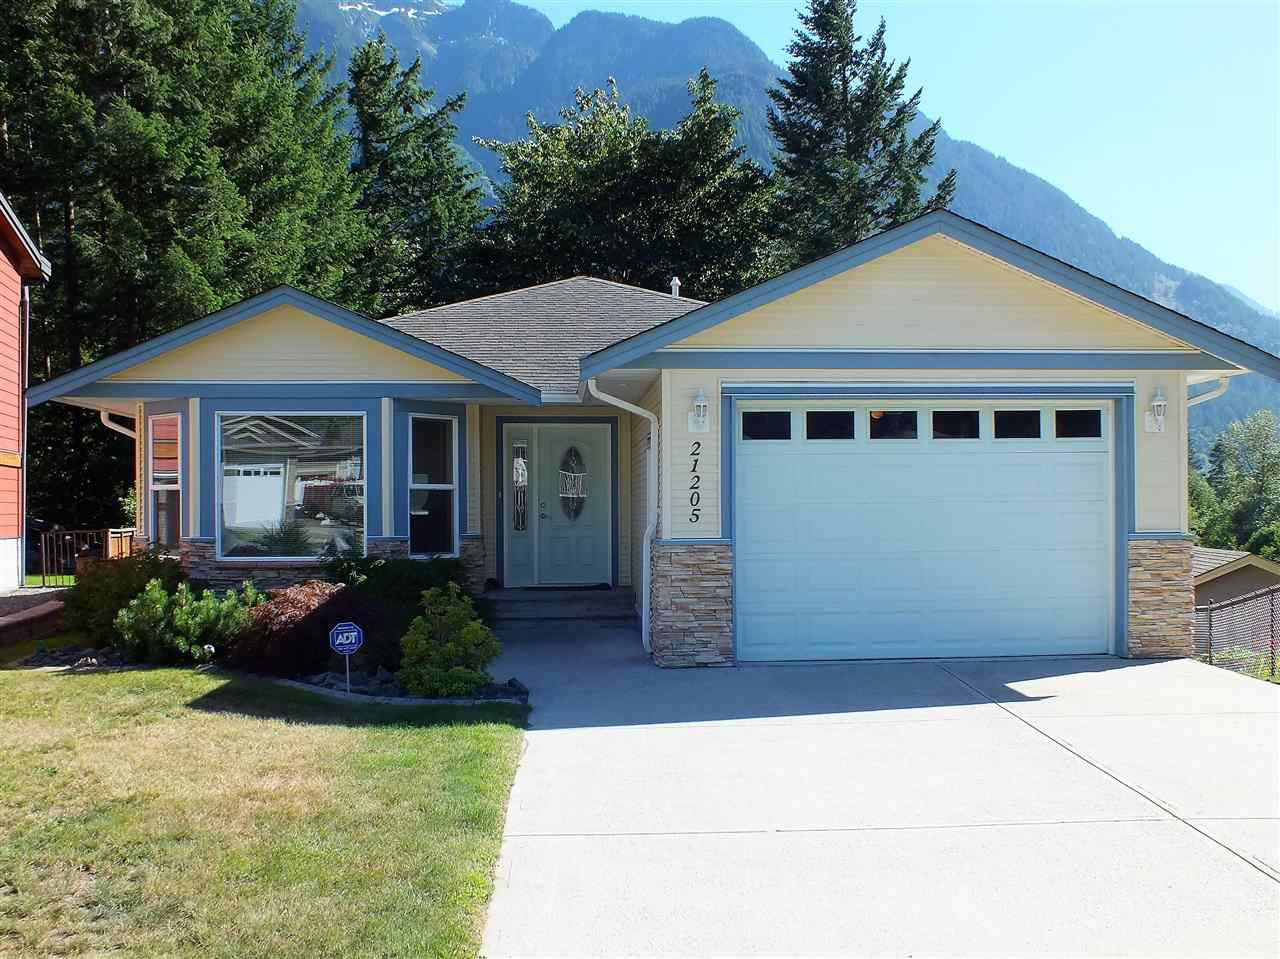 Main Photo: 21205 KETTLE VALLEY Place in Hope: Hope Kawkawa Lake House for sale : MLS®# R2346030